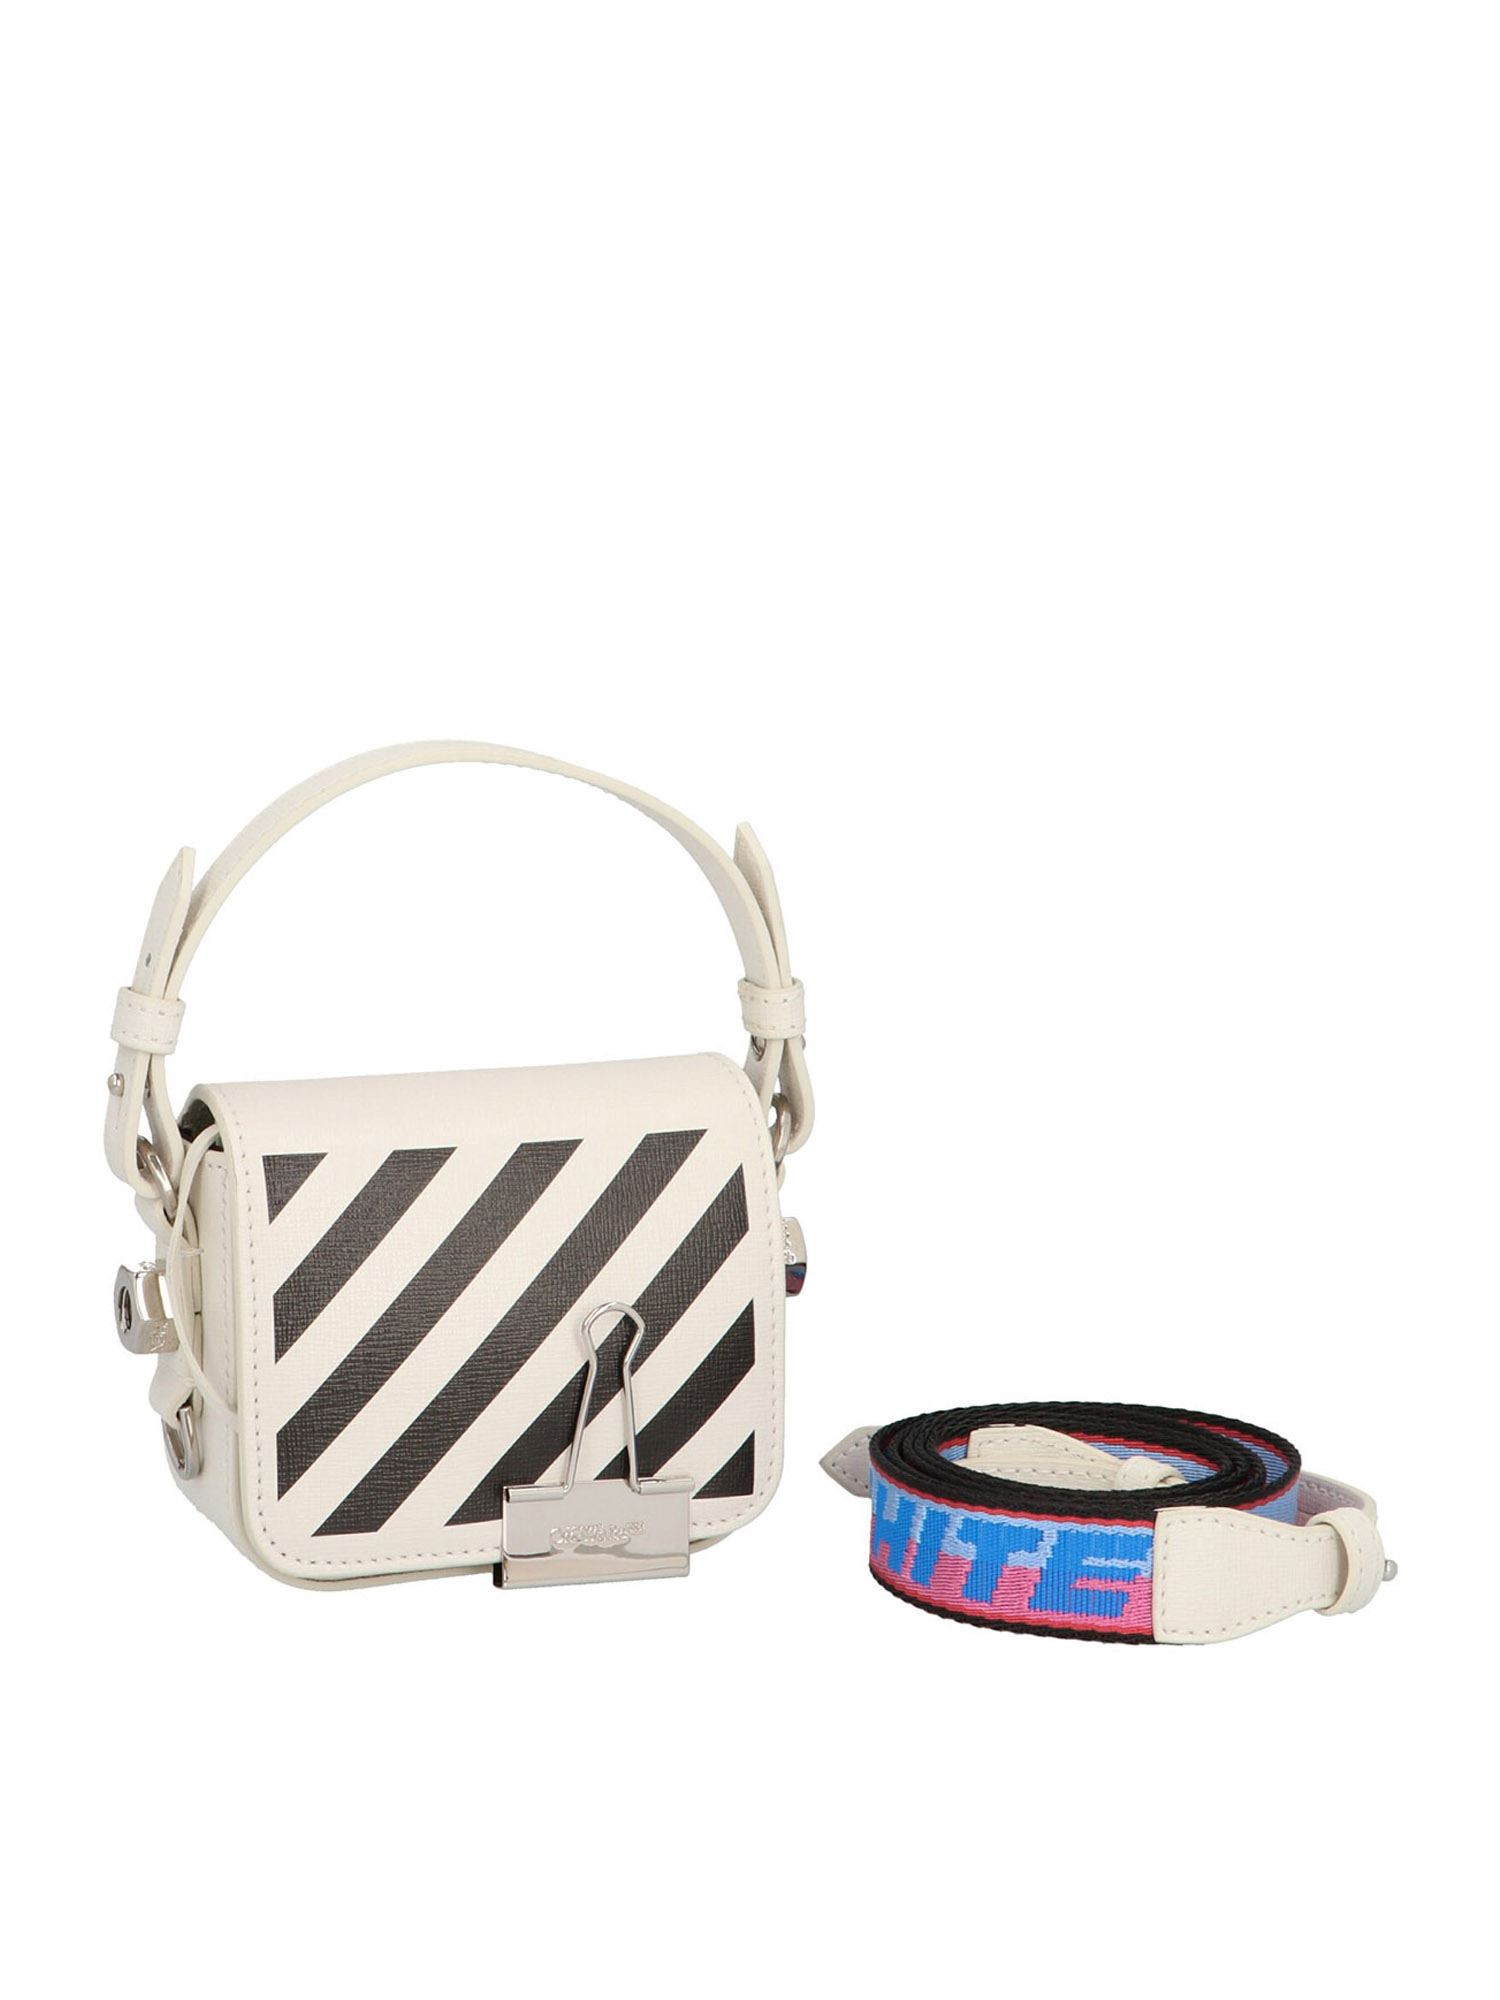 Off-White DIAG BABY FLAP BAG IN WHITE